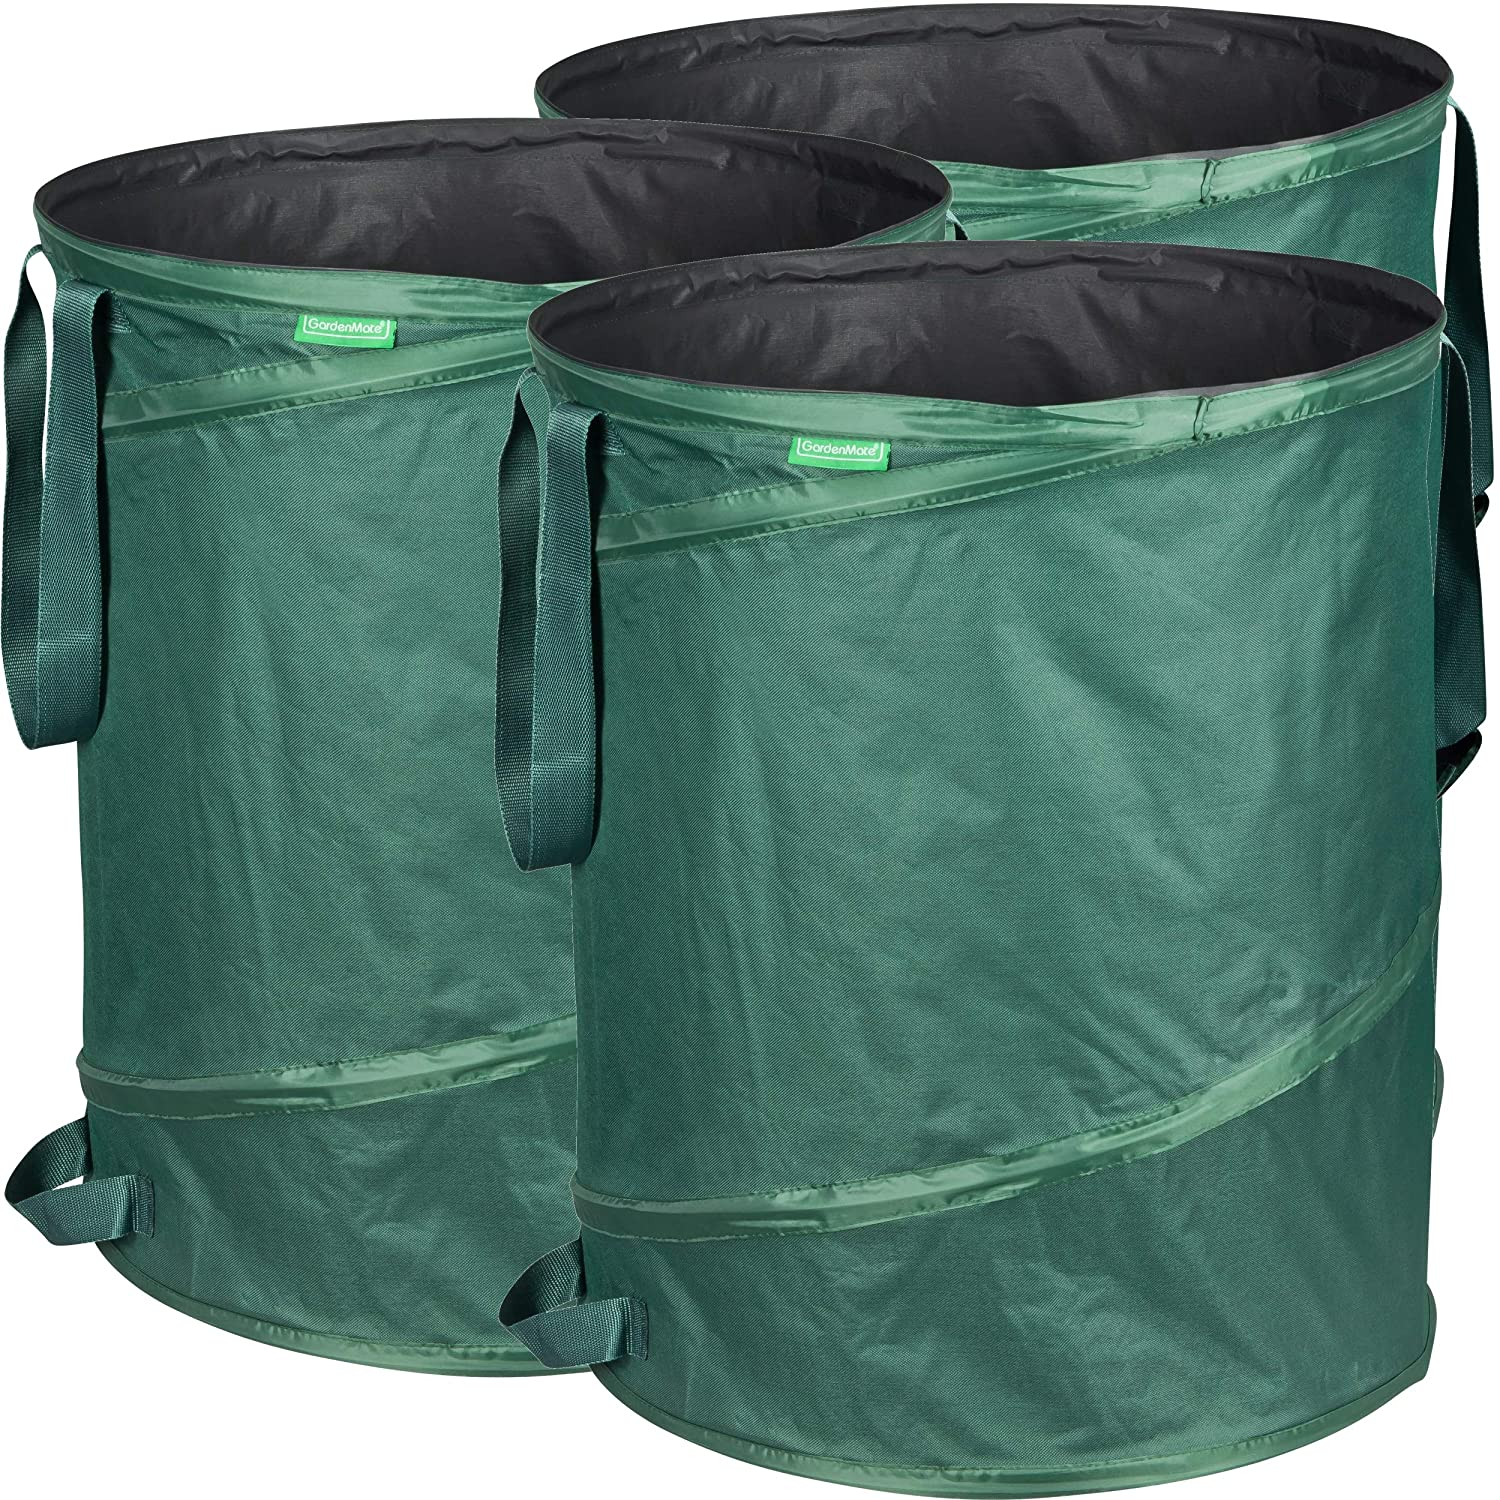 GardenMate pack of 3 x 160L pop-up garden waste bags made of 600D Oxford Polyester (H68 cm, D55 cm) GardenMate®